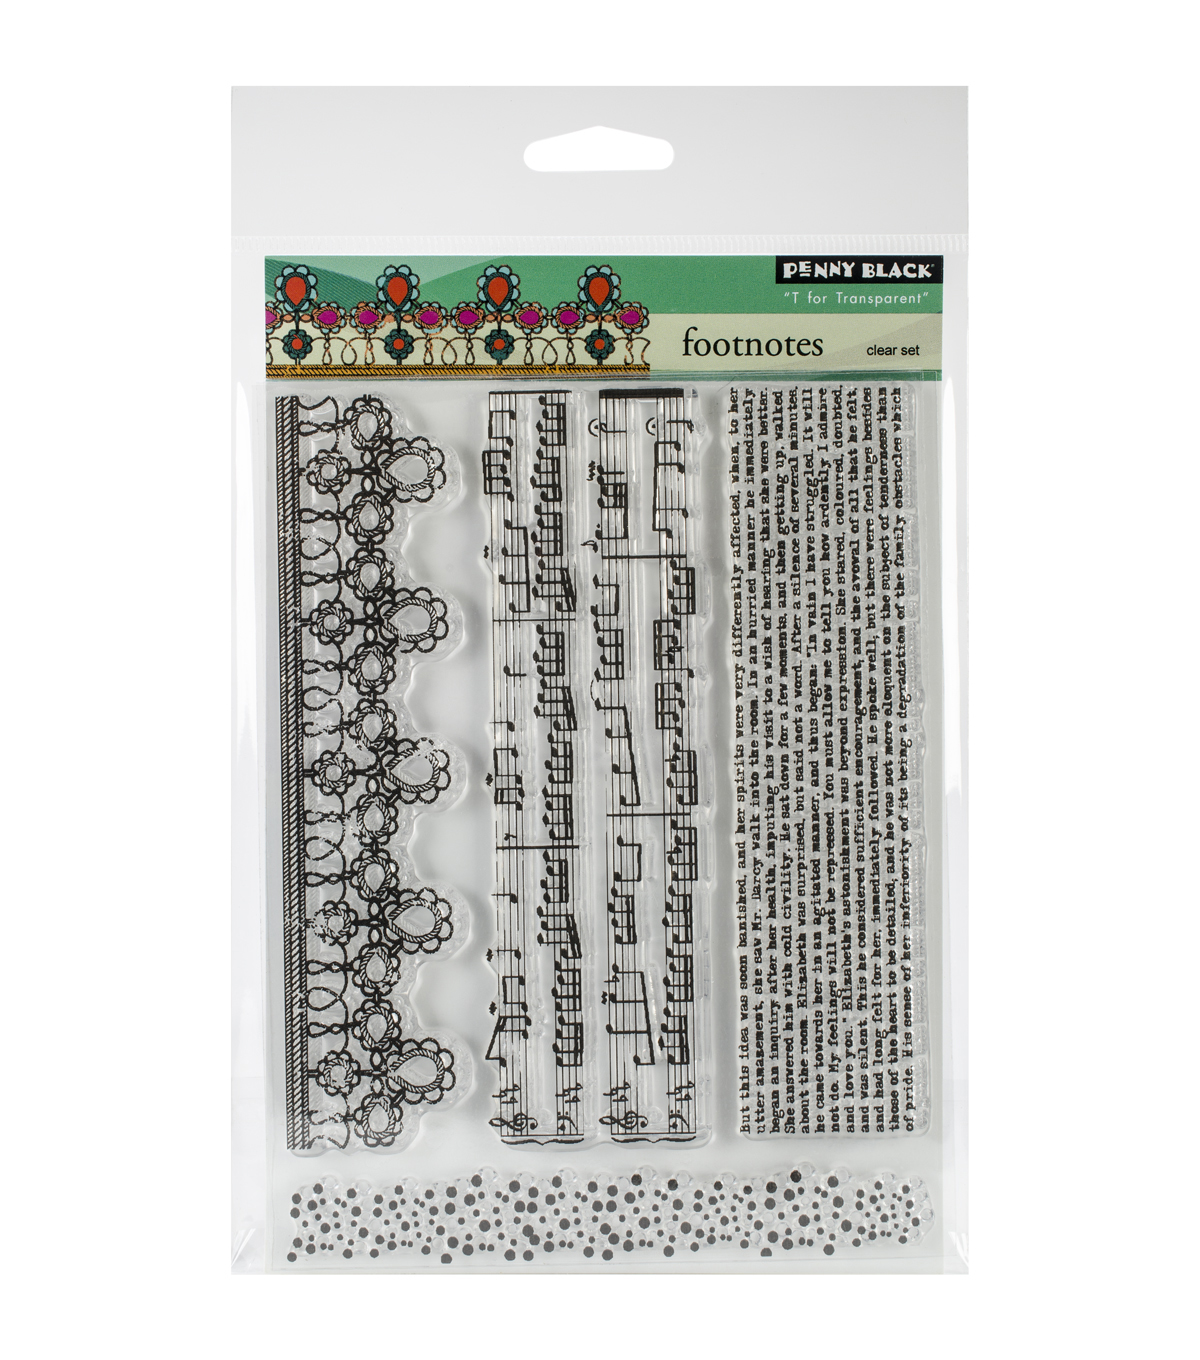 Penny Black Clear Stamps 5\u0022X6.5\u0022 Sheet-Footnotes